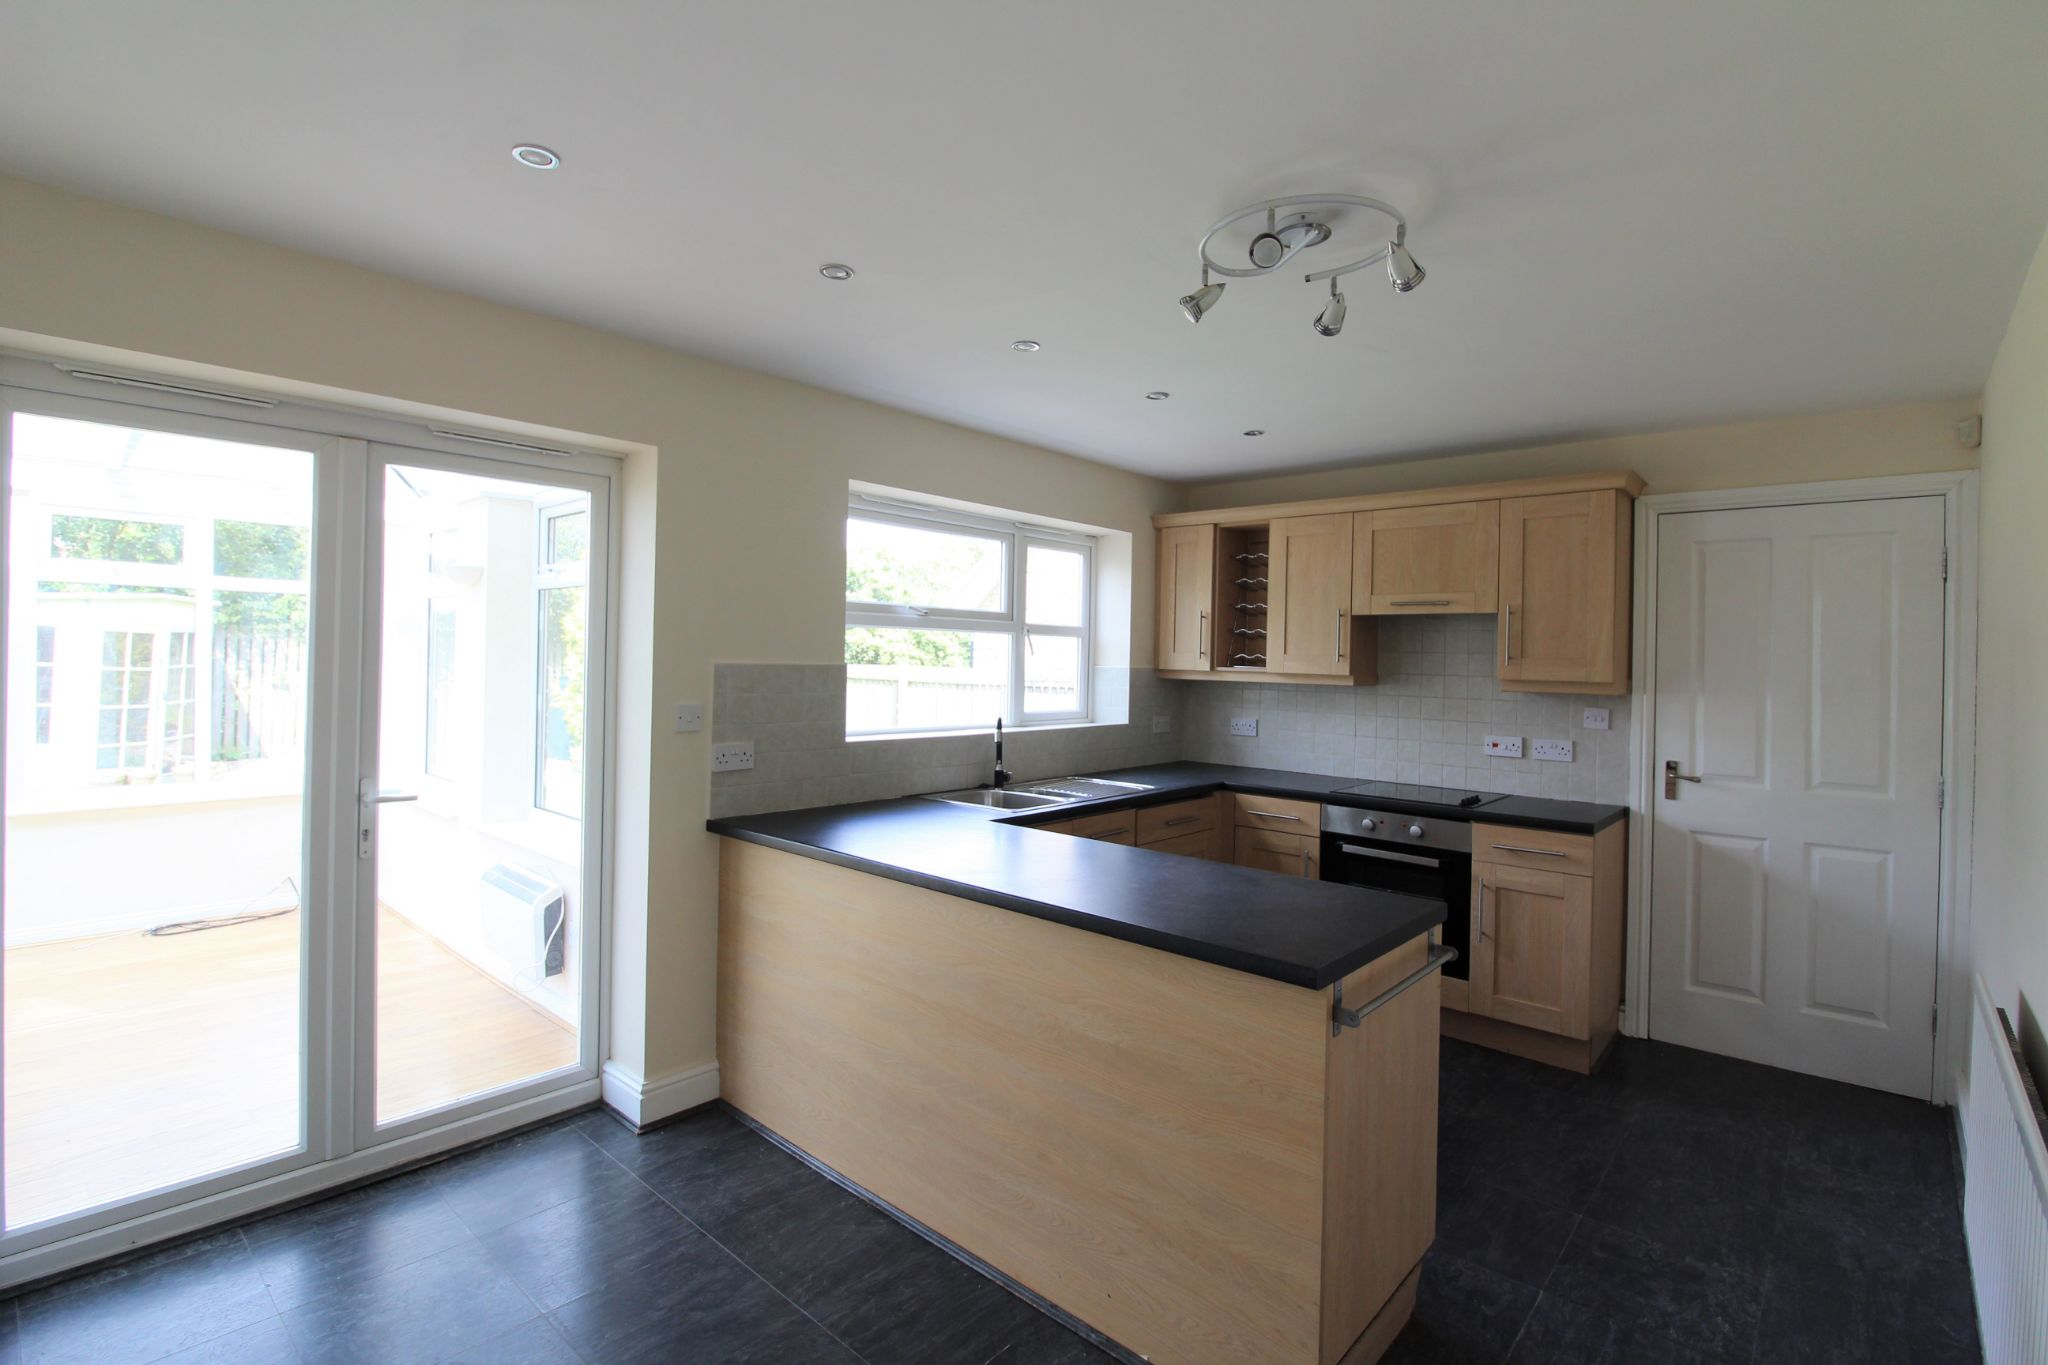 7 bedroom detached house Sale Agreed in Sunniside - Photograph 15.